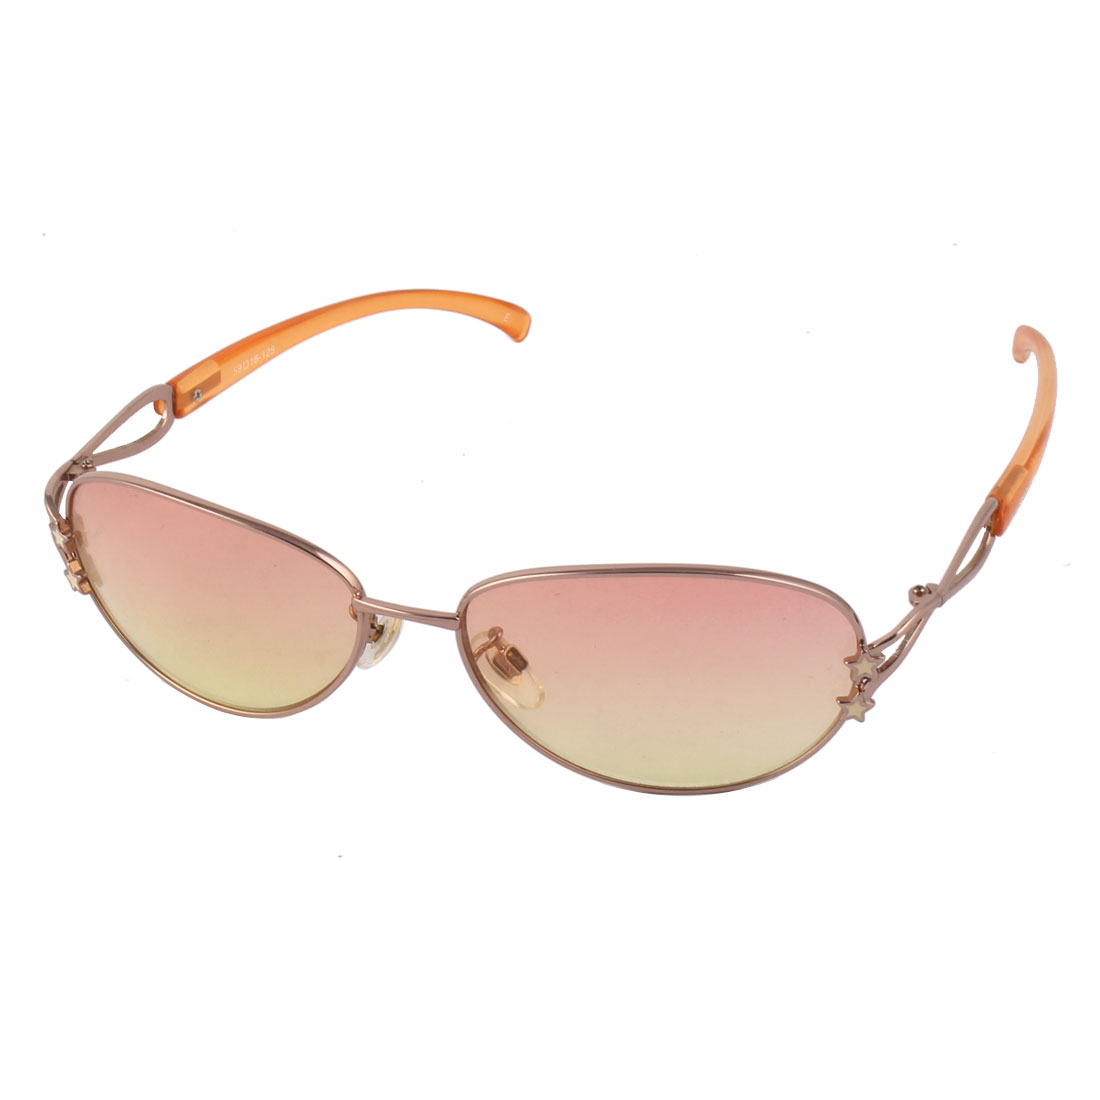 Silvery Stars Metal Frame Light Pink Ladies' Eyewear Sunglasses